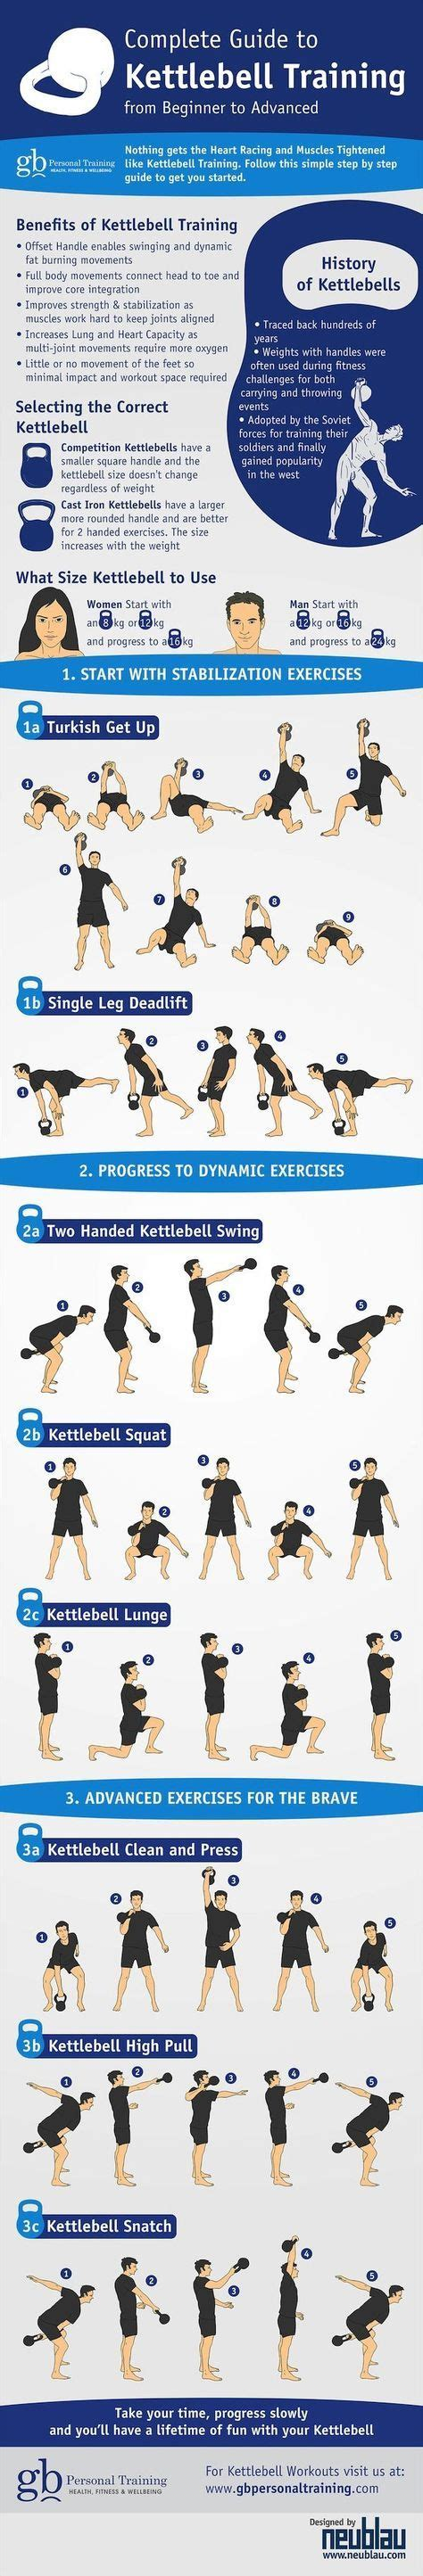 kettlebell workouts training guide infographic exercise exercises fitness weight complete workout beginner beginners body kettle crossfit gym kettlebells benefits greg